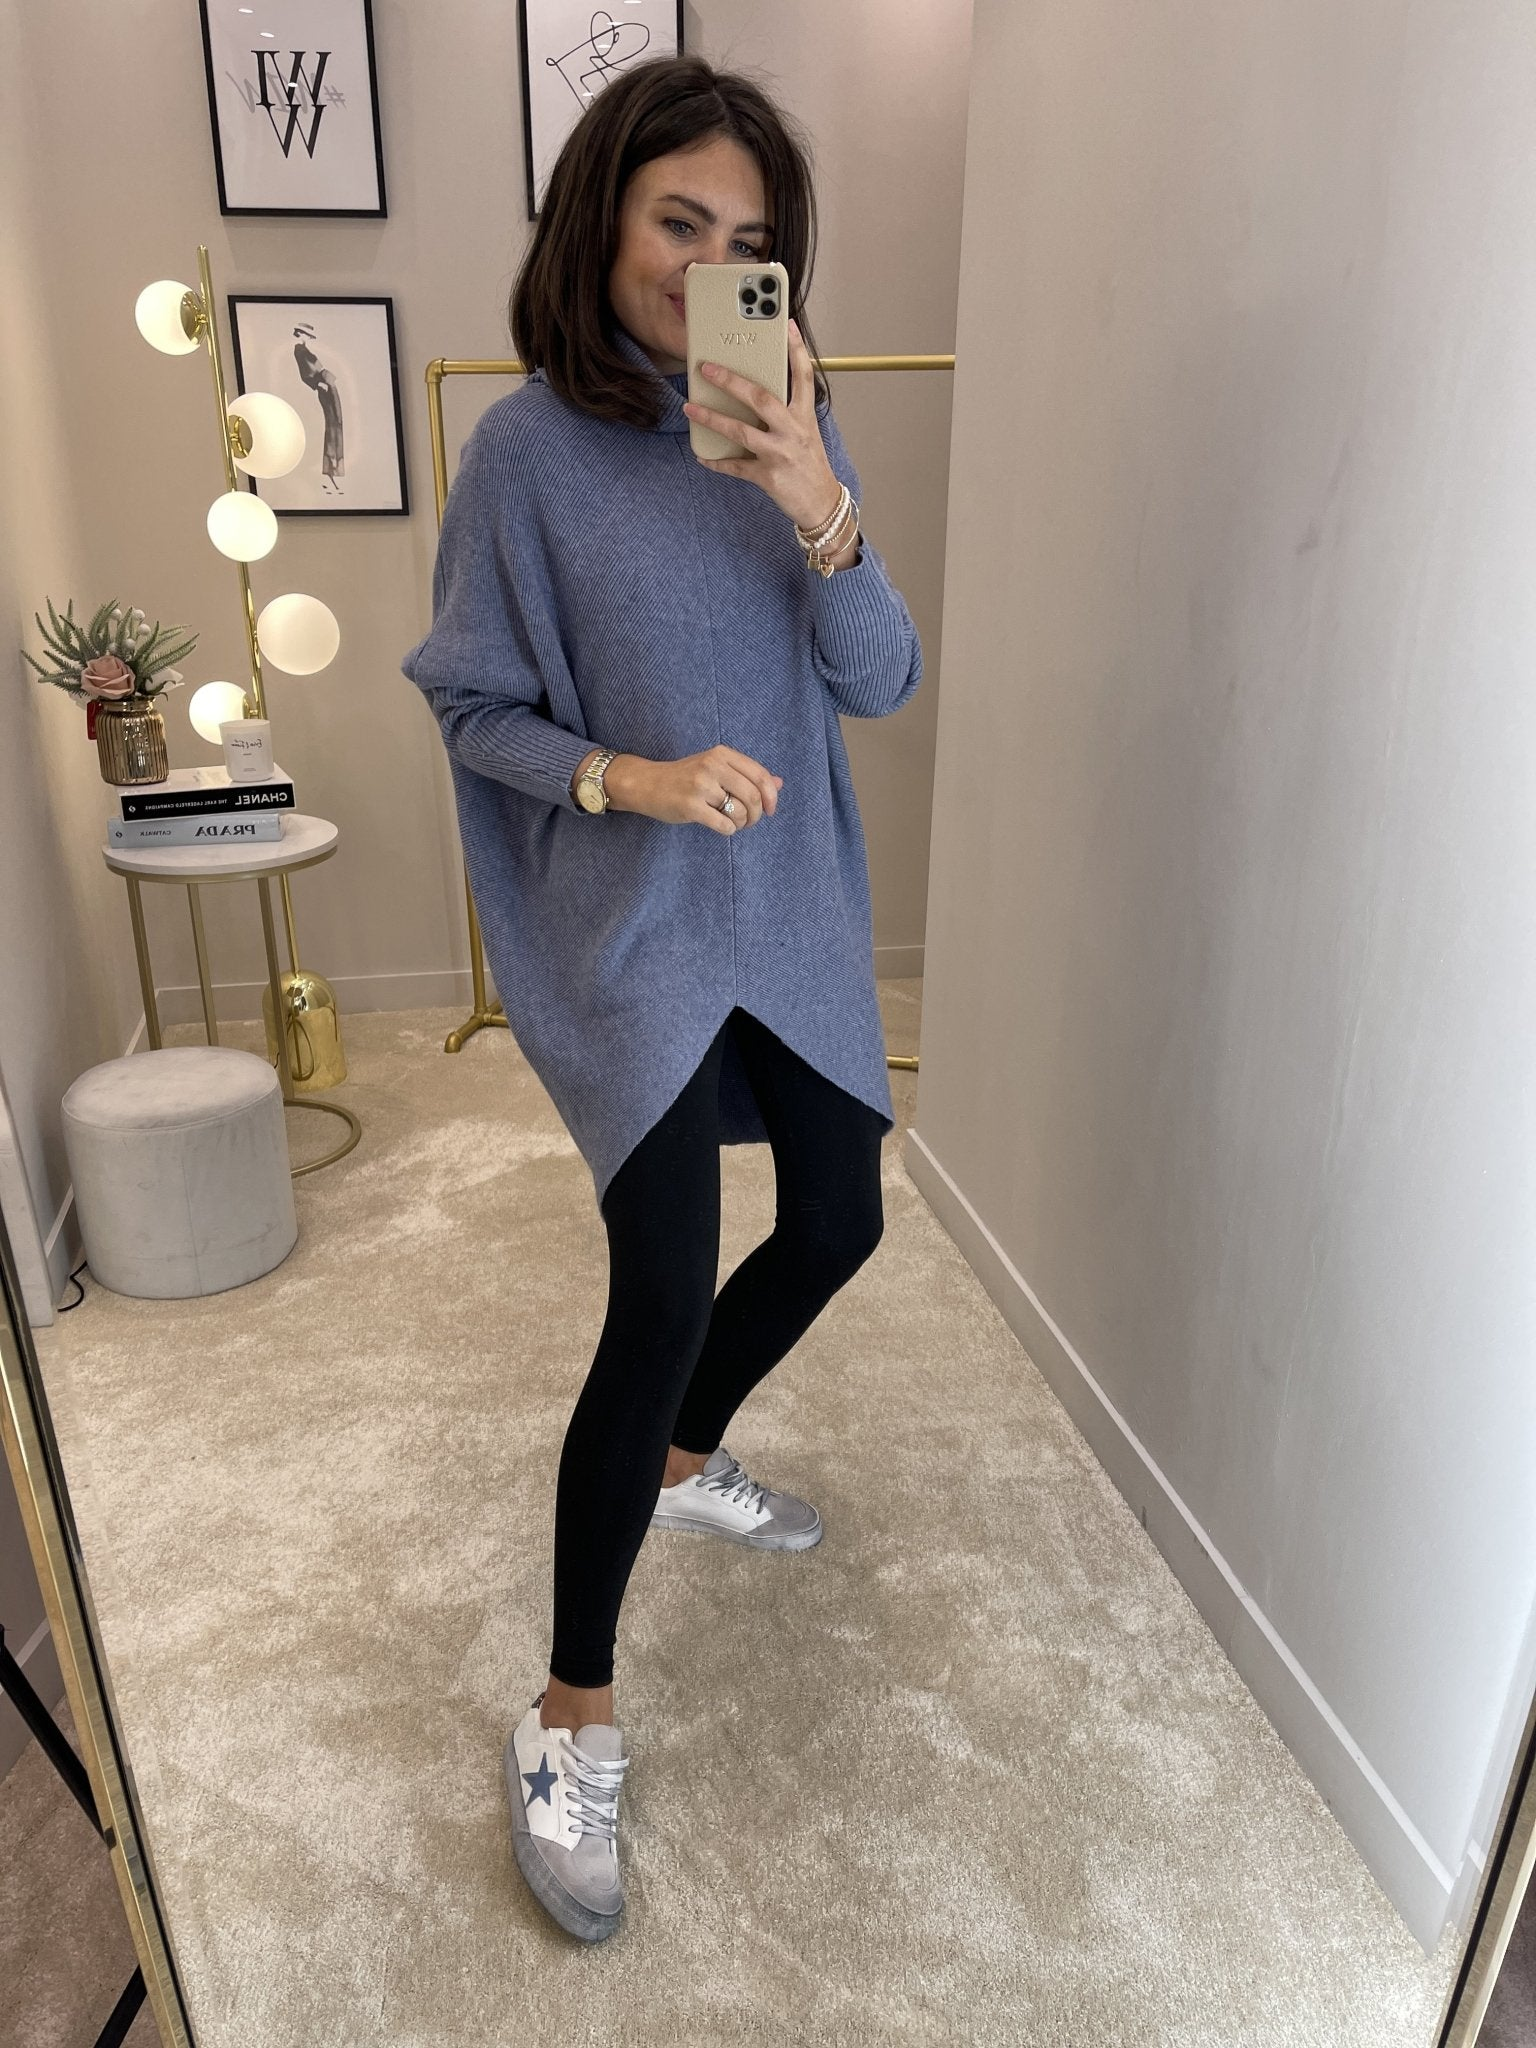 Nora Batwing Jumper Dress In Denim - The Walk in Wardrobe